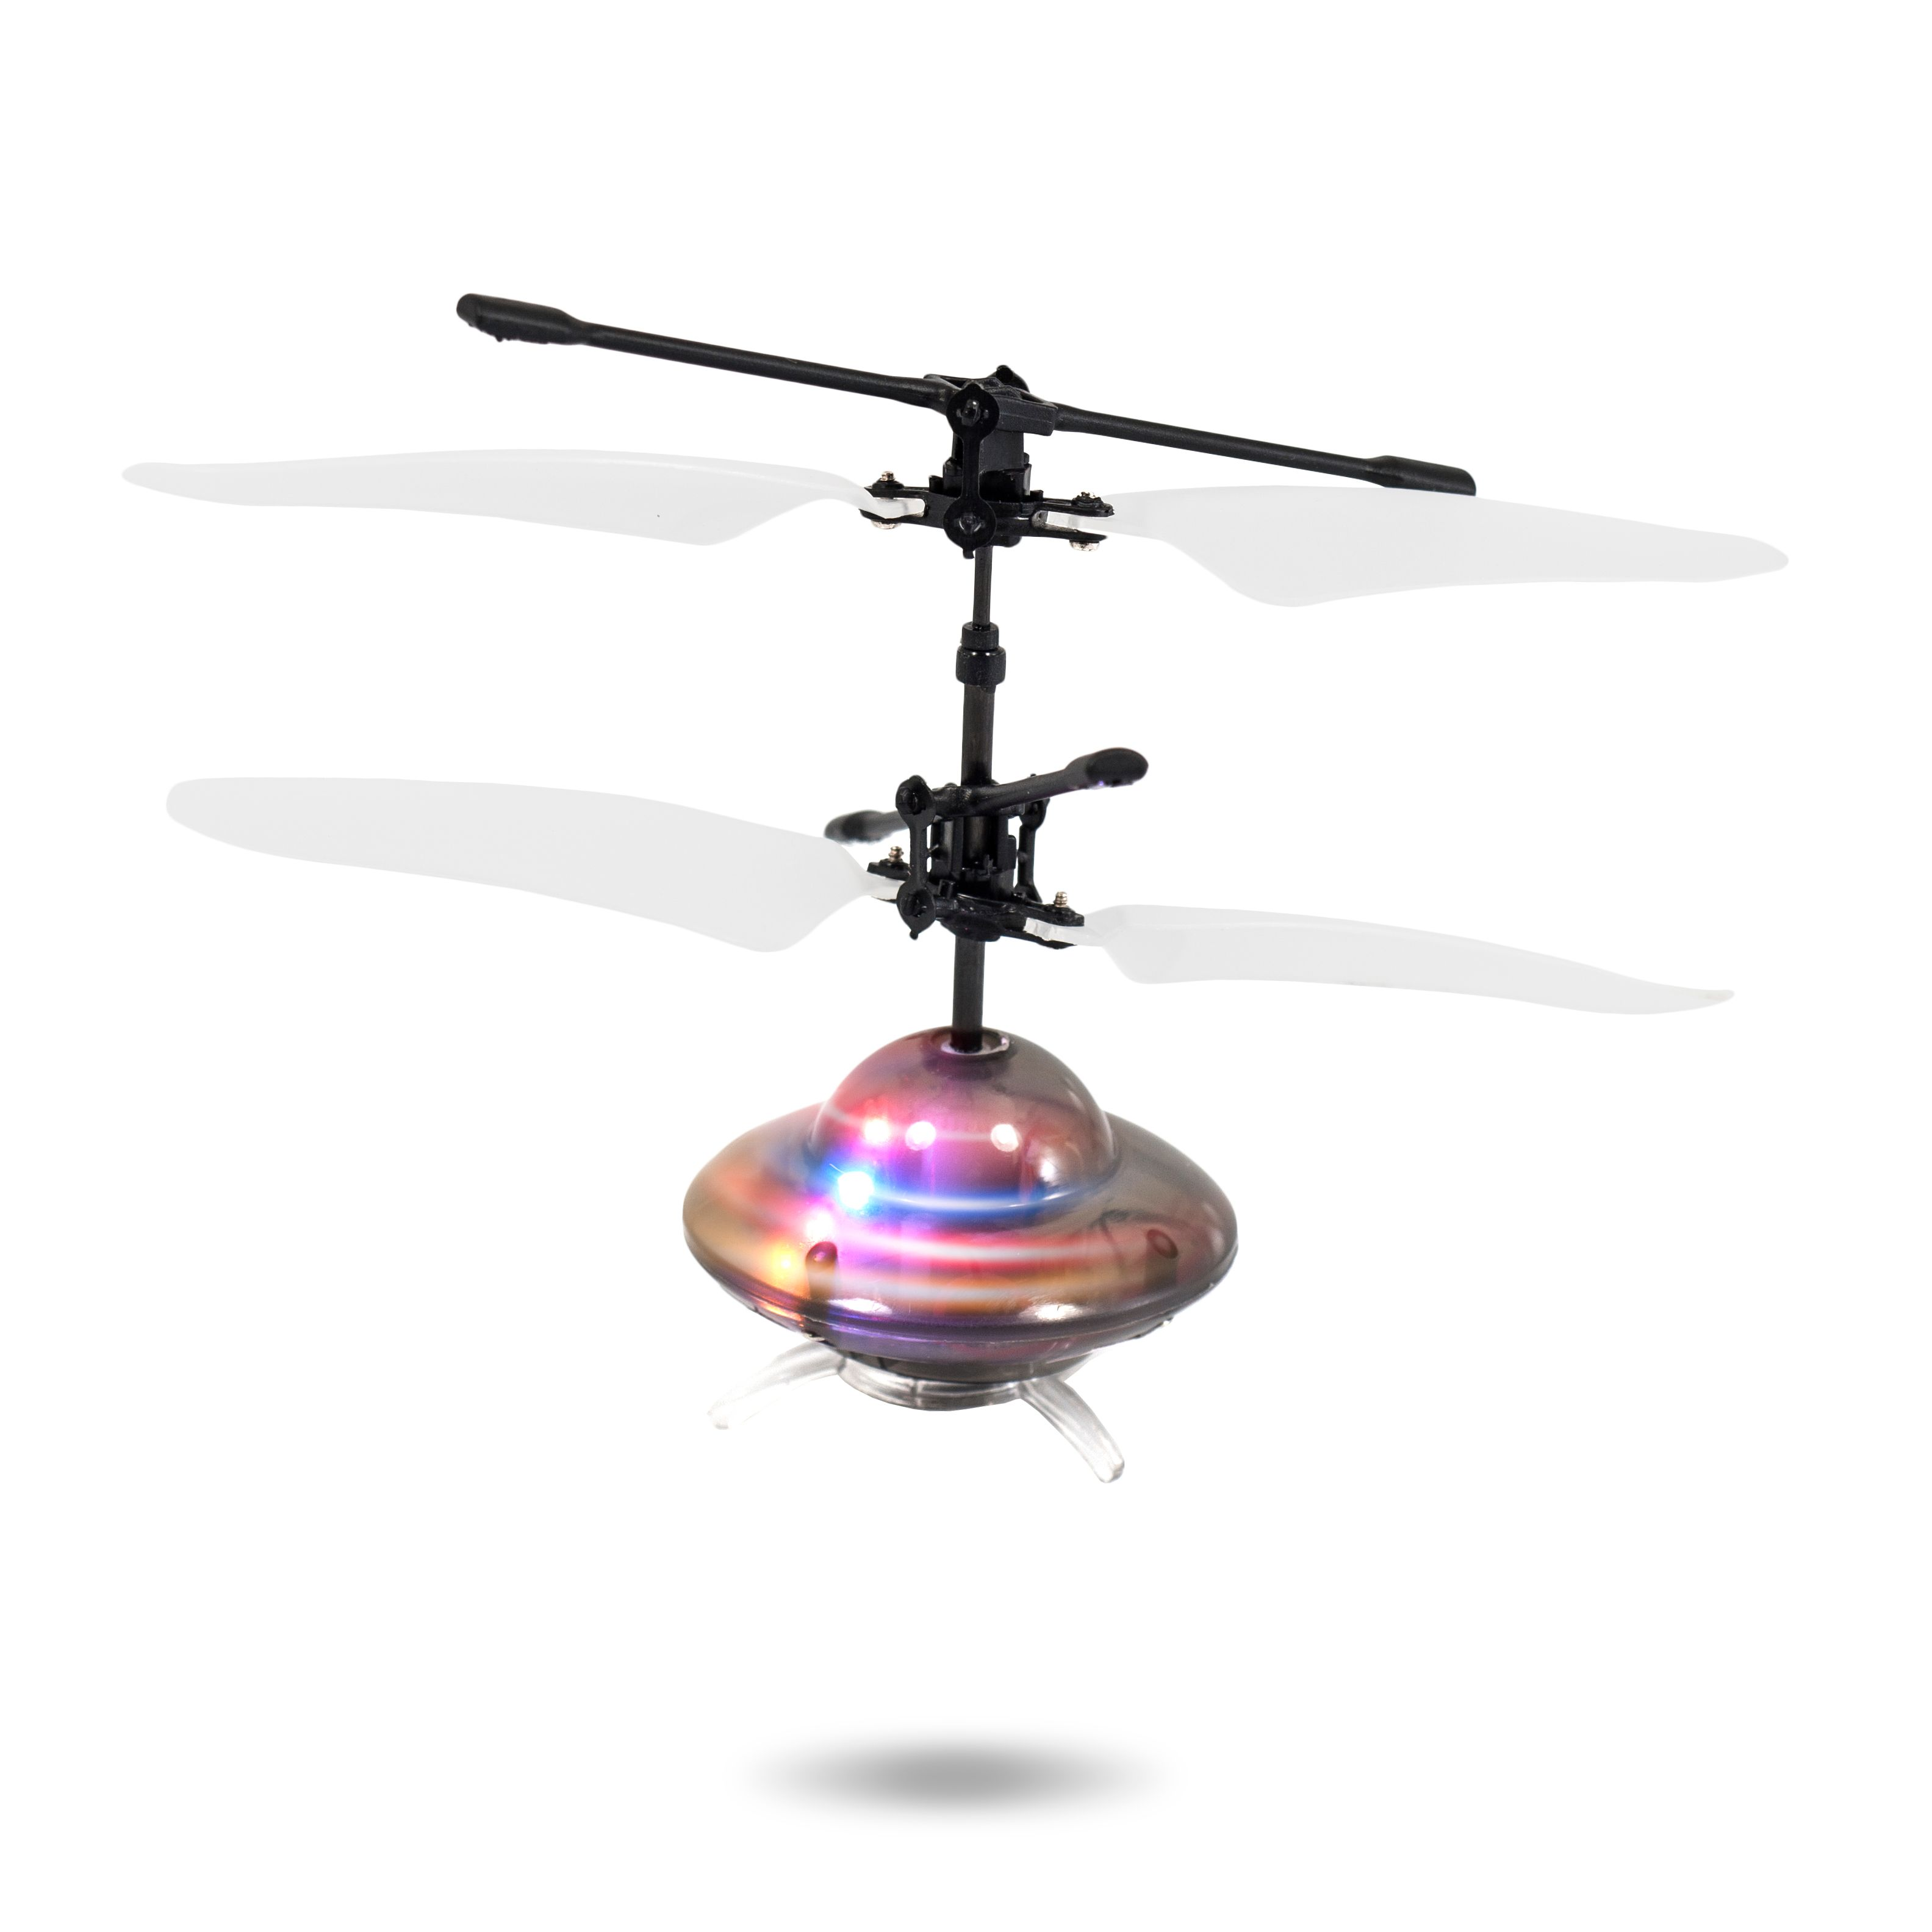 Red 5 IR Cyber Flyer Remote Control Helicopter